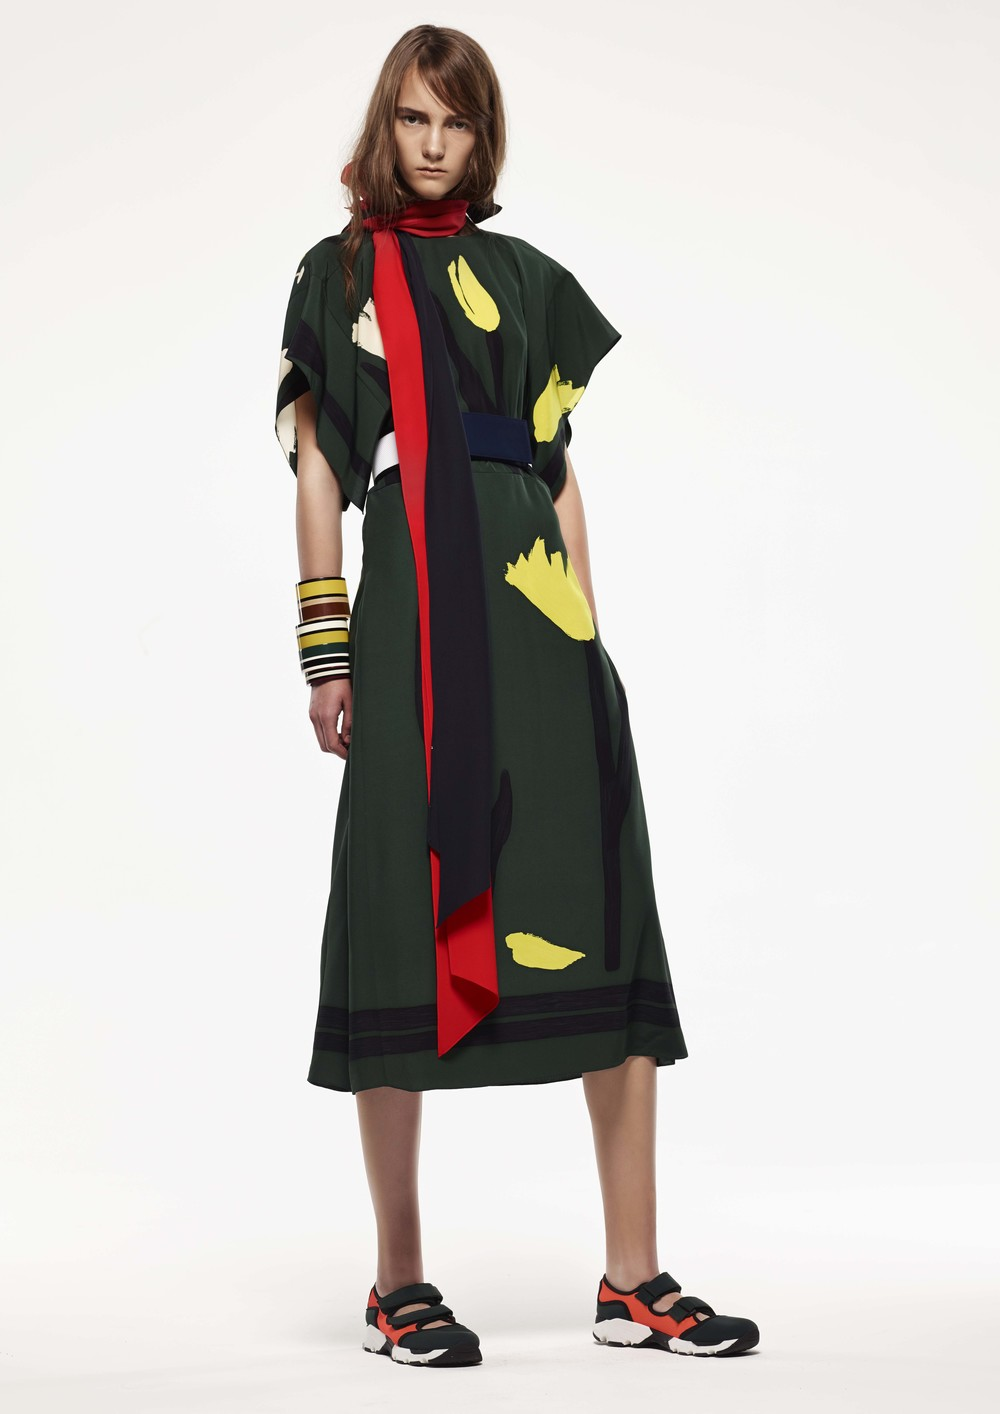 12 - MARNI RESORT 2015 COLLECTION.jpg